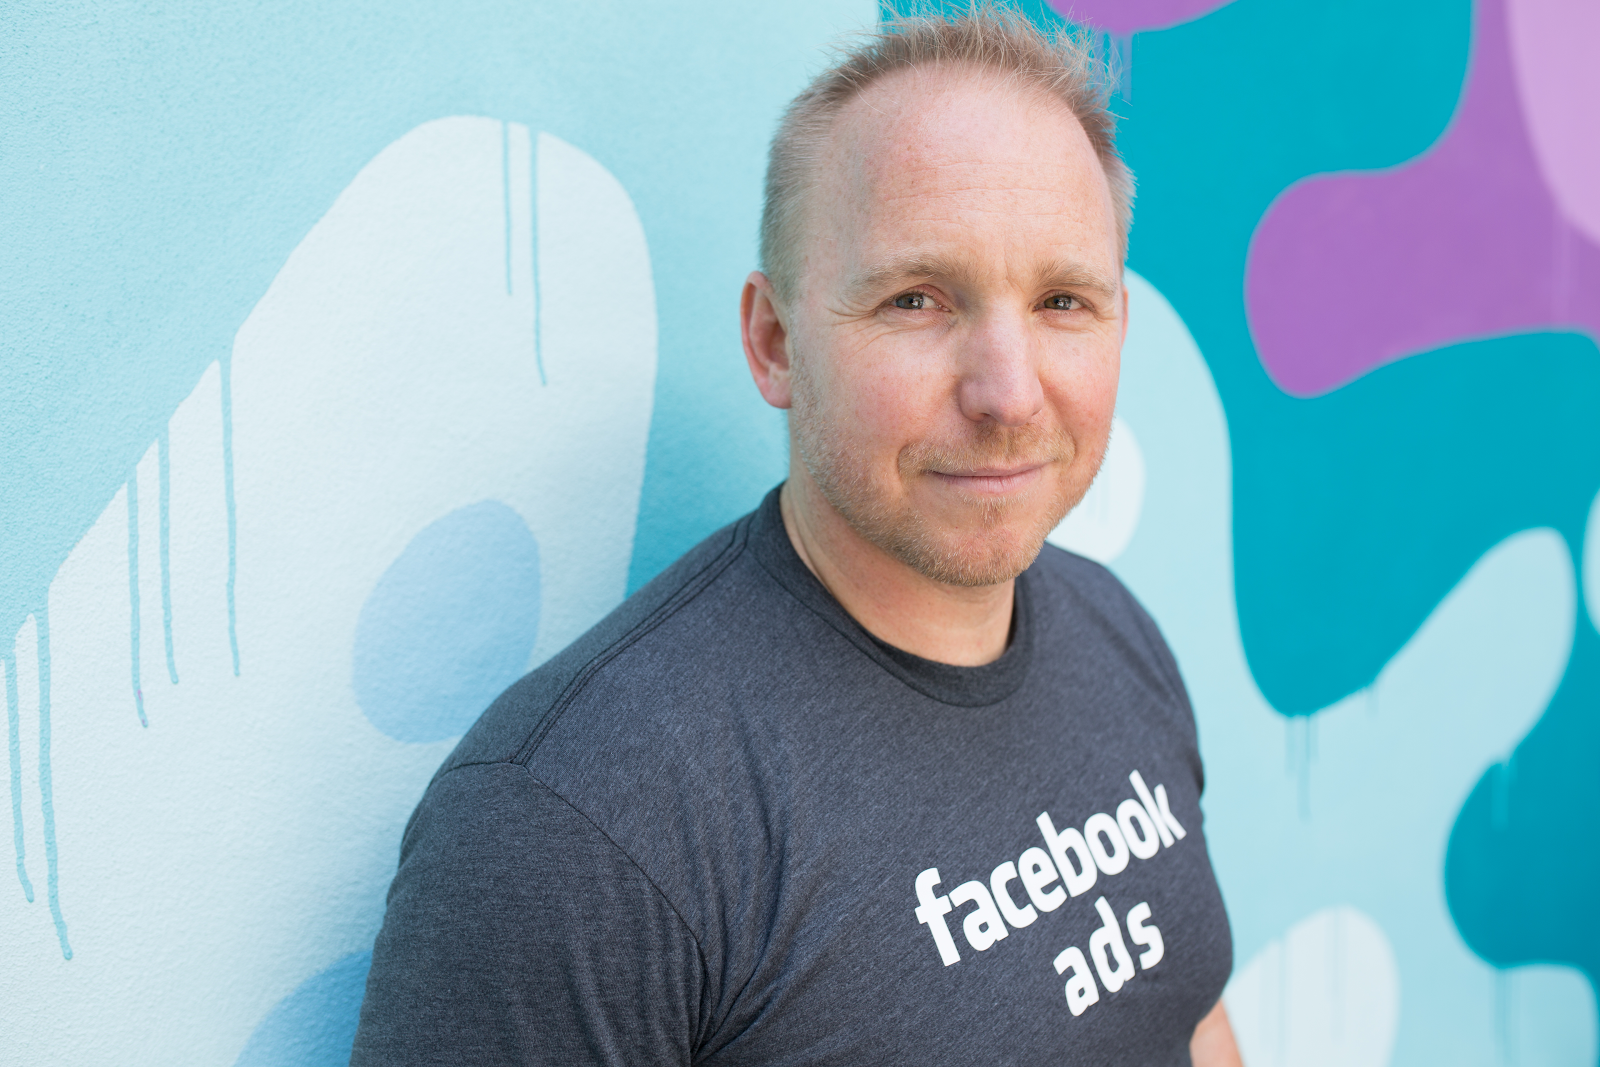 how-i-left-my-job-to-start-a-50k-month-digital-advertising-agency-specialized-in-facebook-ads